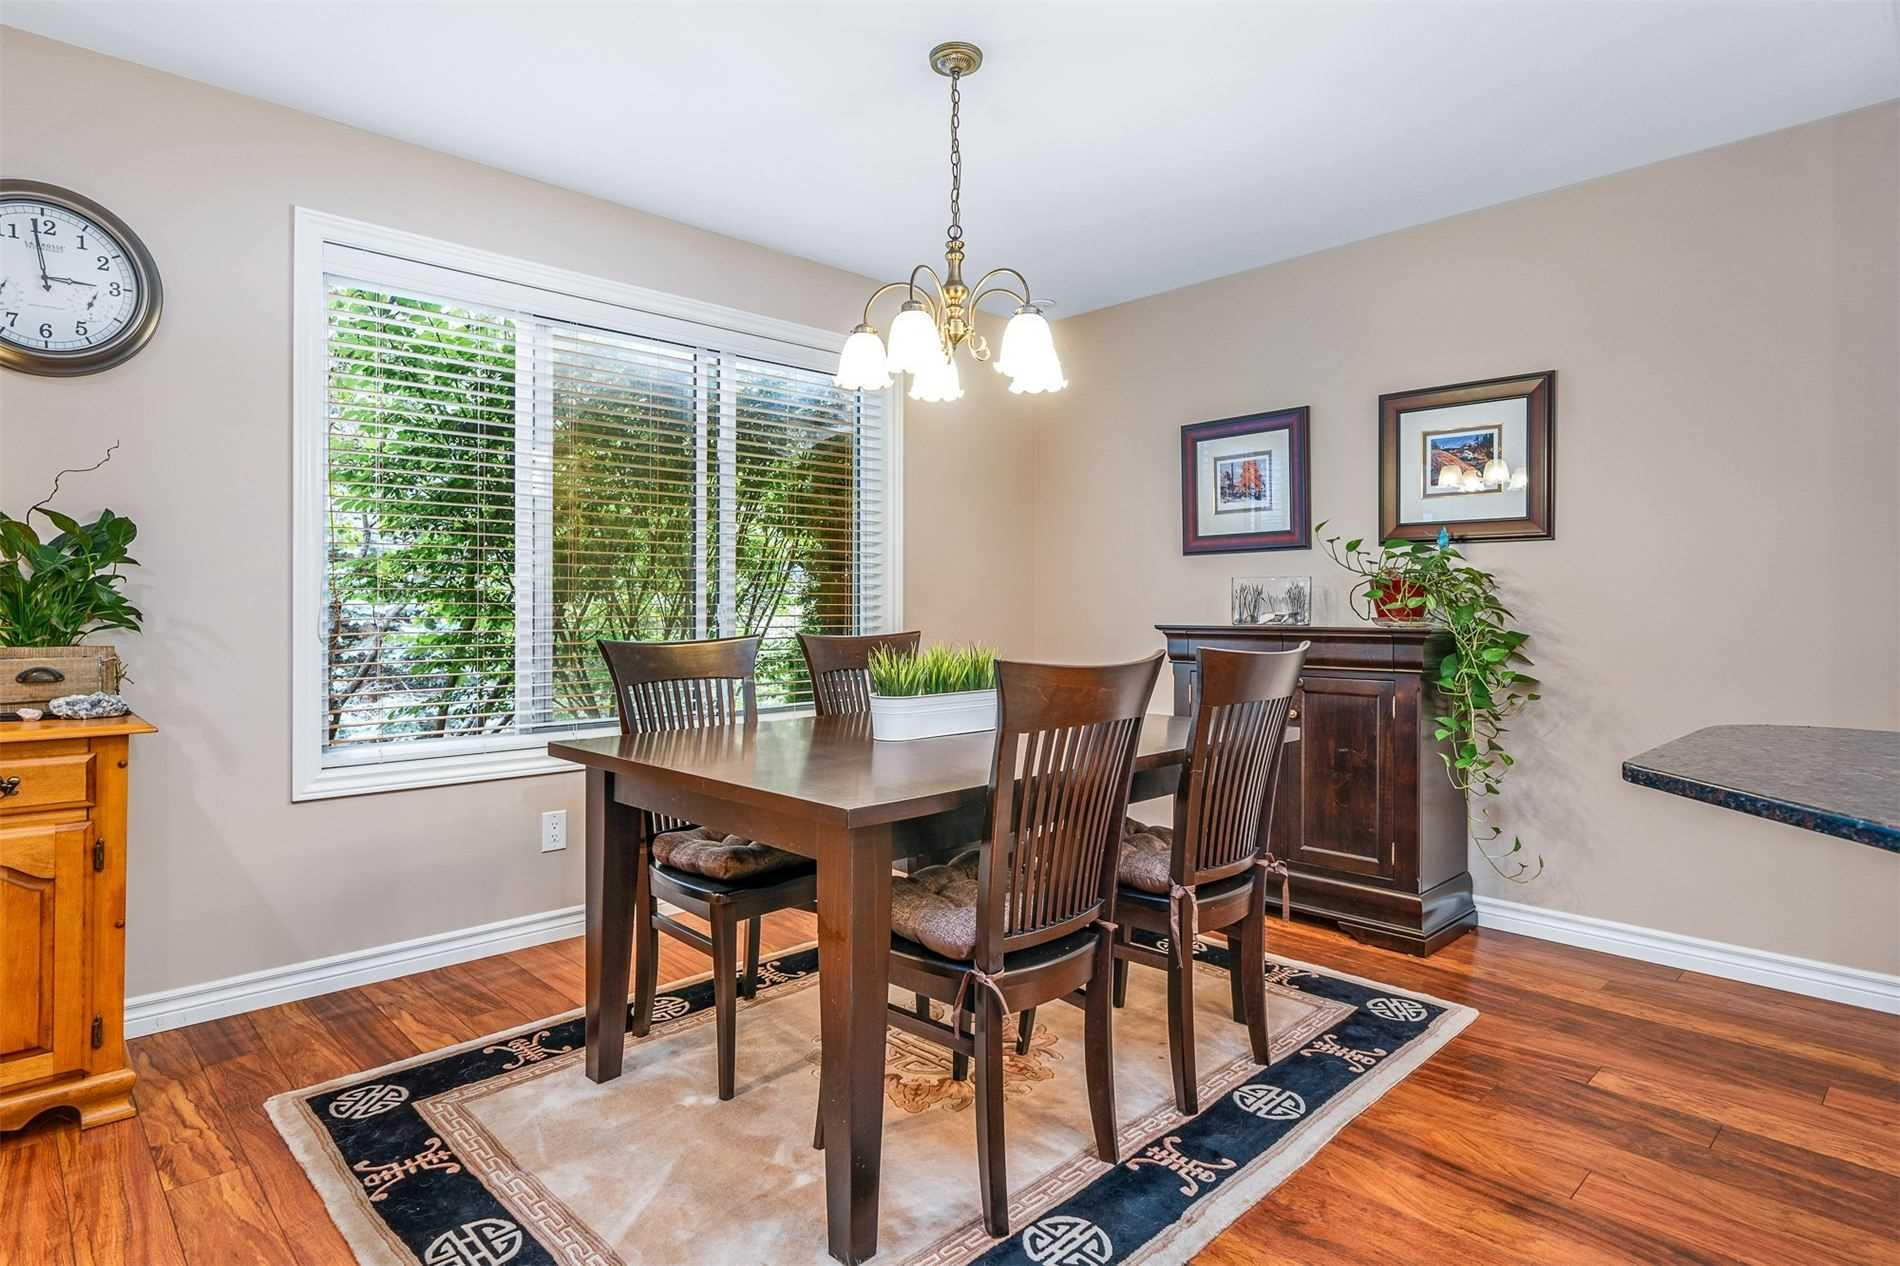 Detached house For Sale In Brighton - 4 Tall Pines Dr, Brighton, Ontario, Canada K0K 1H0 , 3 Bedrooms Bedrooms, ,2 BathroomsBathrooms,Detached,For Sale,Tall Pines